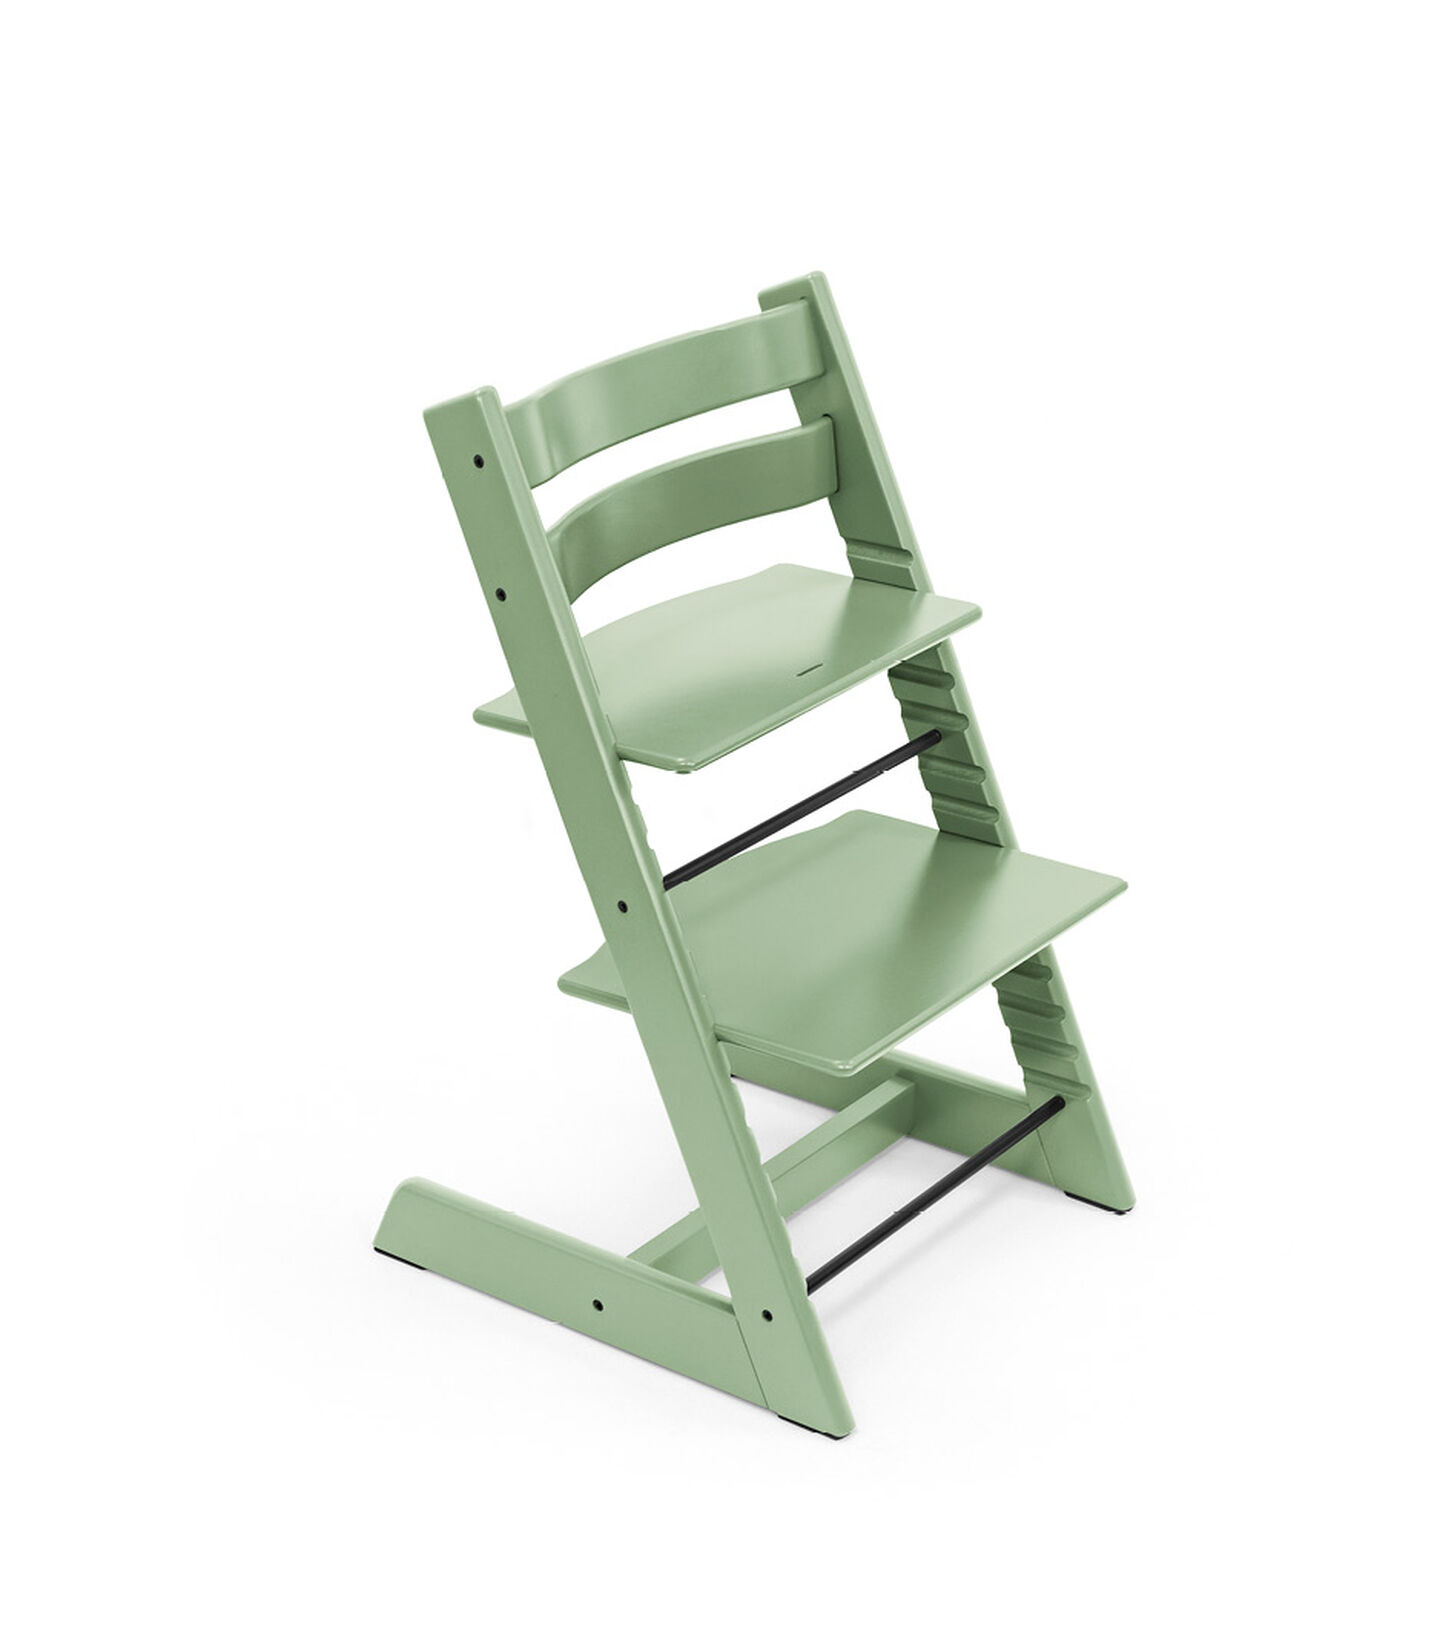 Tripp Trapp® Chair Moss Green, Moss Green, mainview view 2